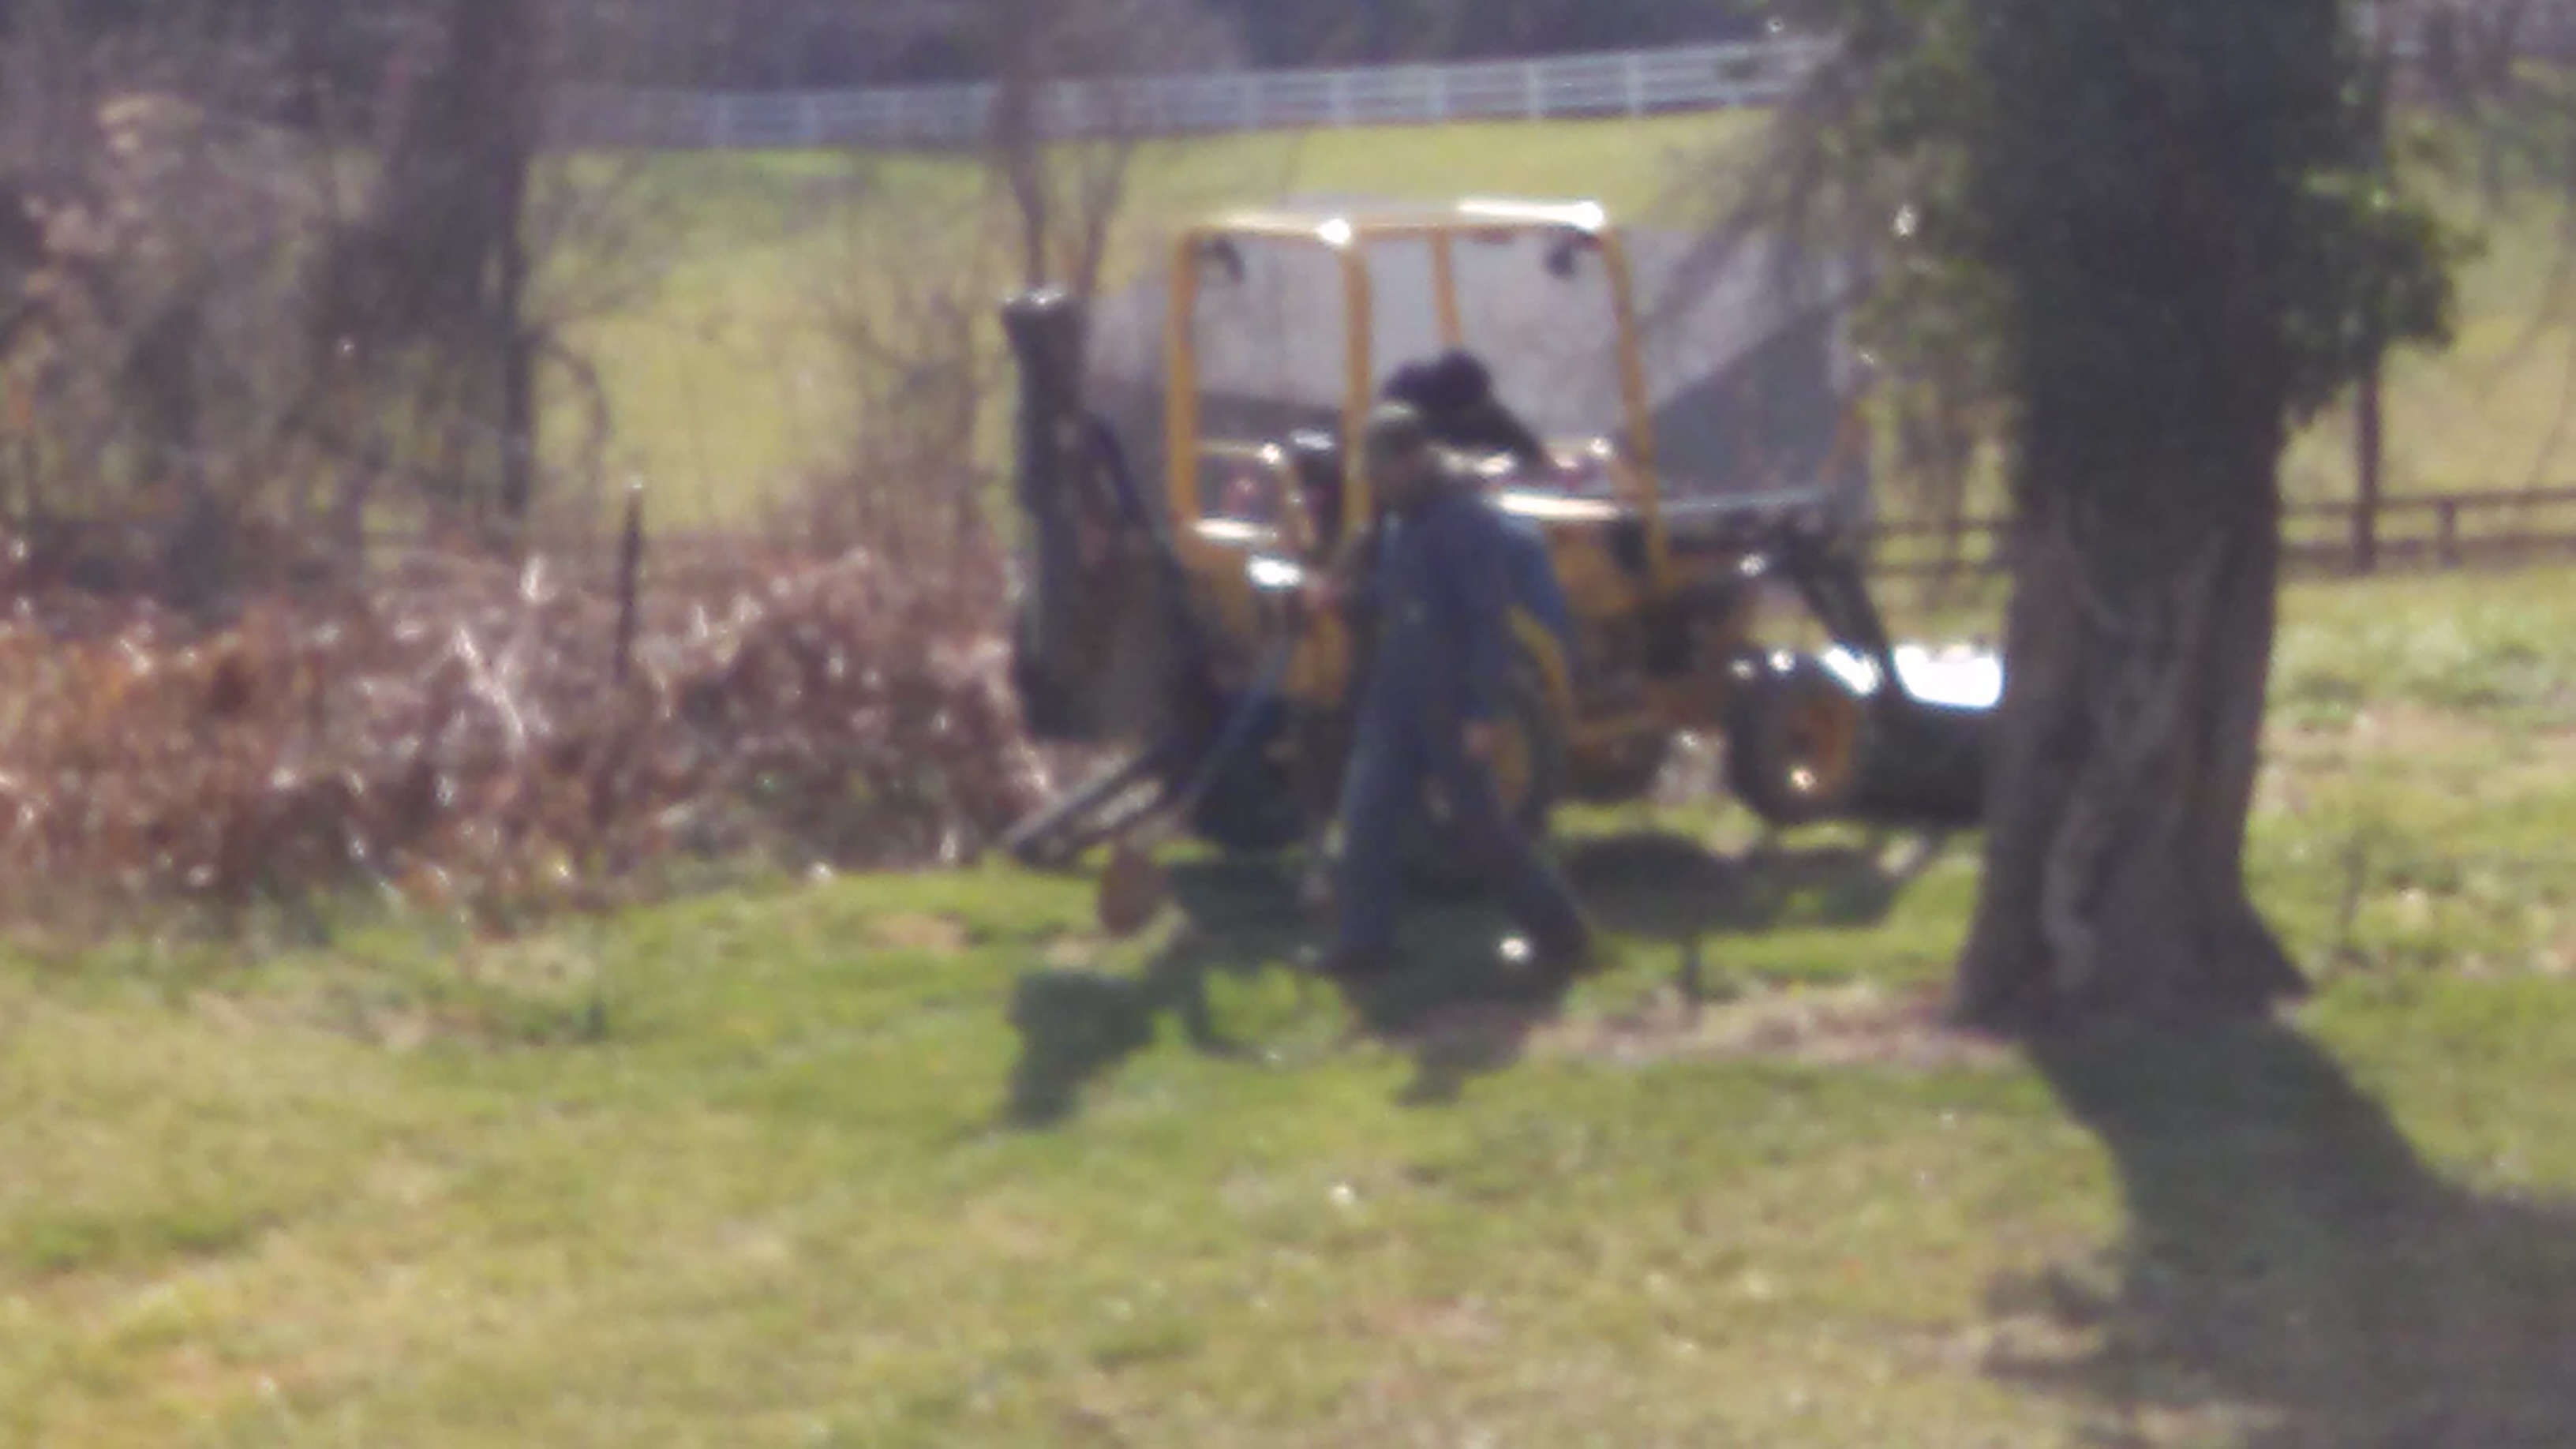 Opening/checking the septic tank & distribution box.